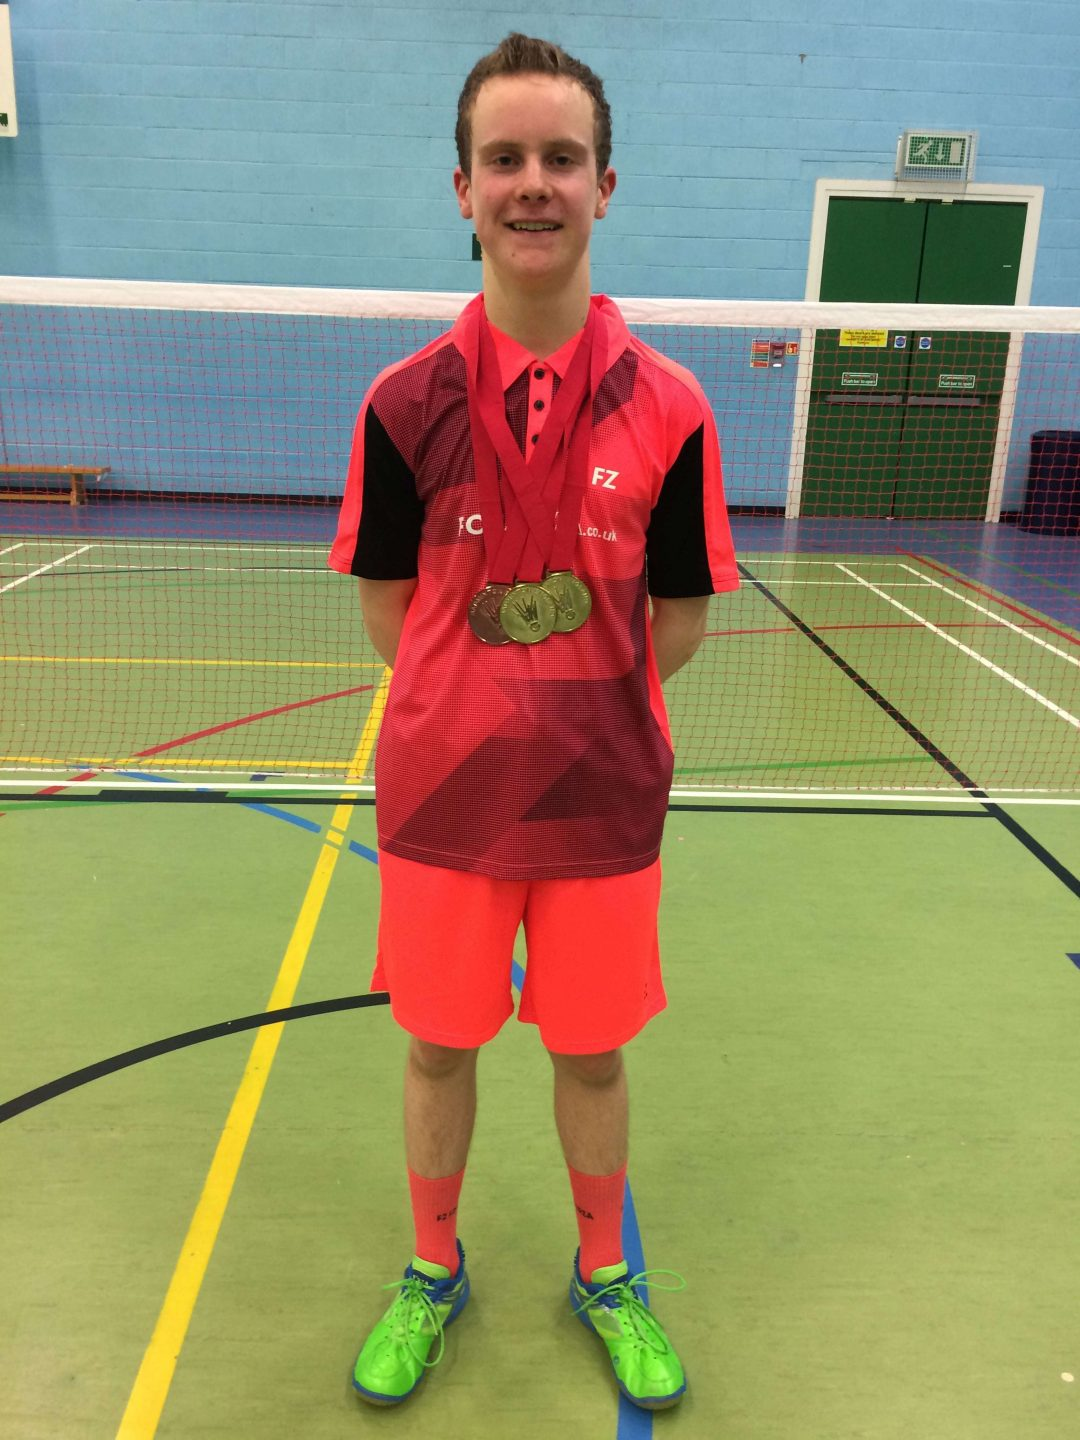 Zak-Ray Linley-Moss with his winning medals